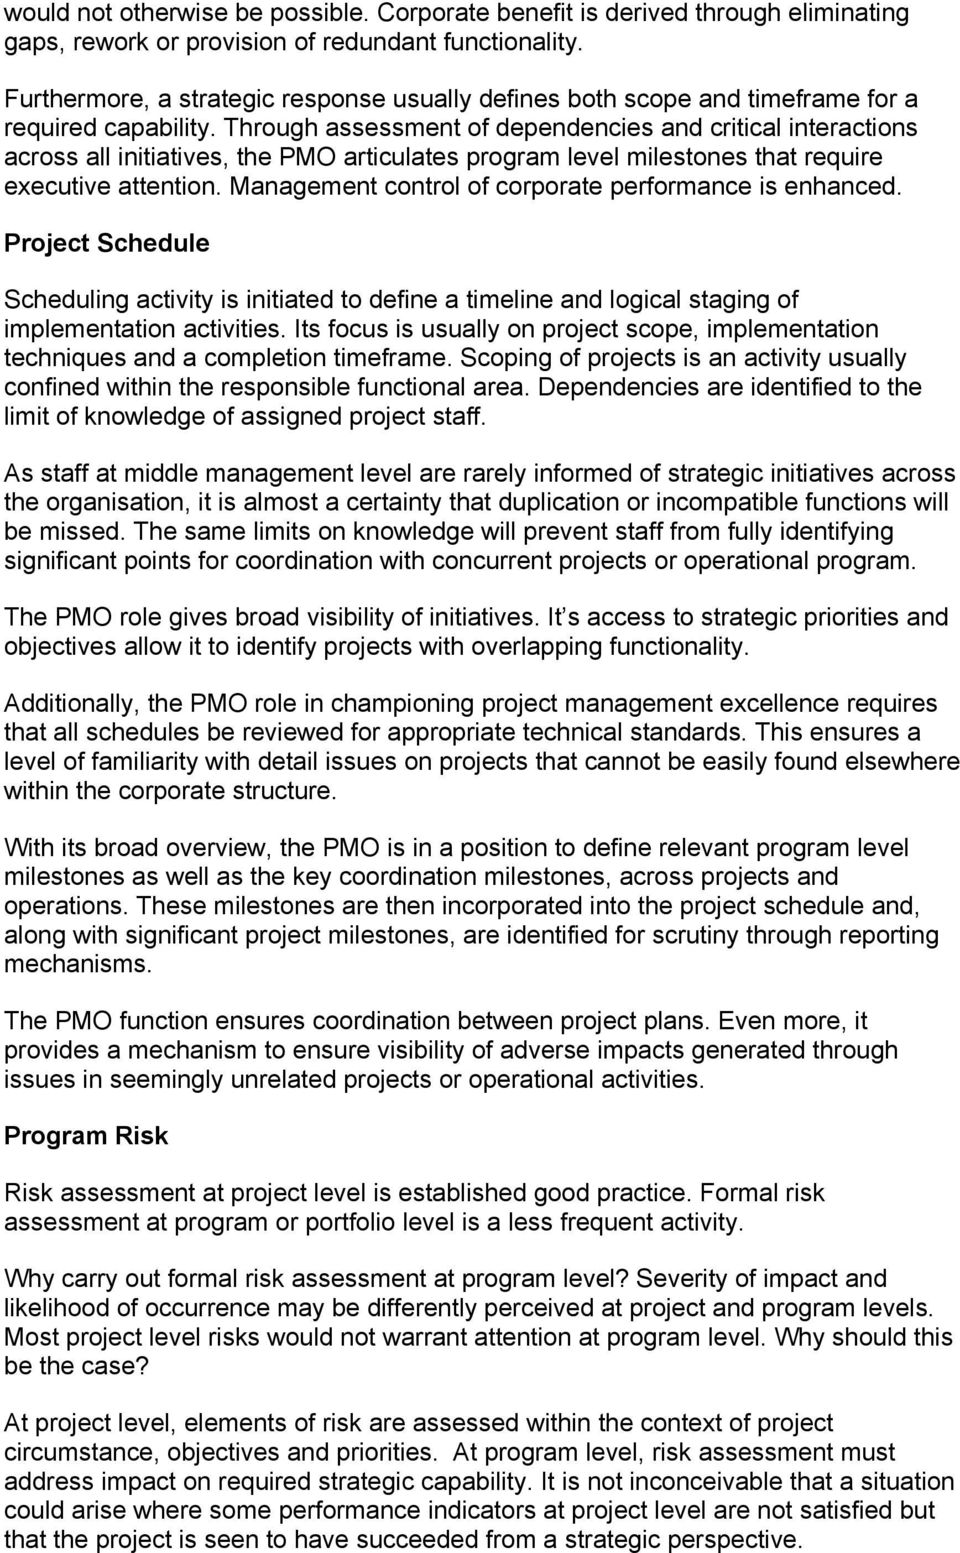 Through assessment of dependencies and critical interactions across all initiatives, the PMO articulates program level milestones that require executive attention.